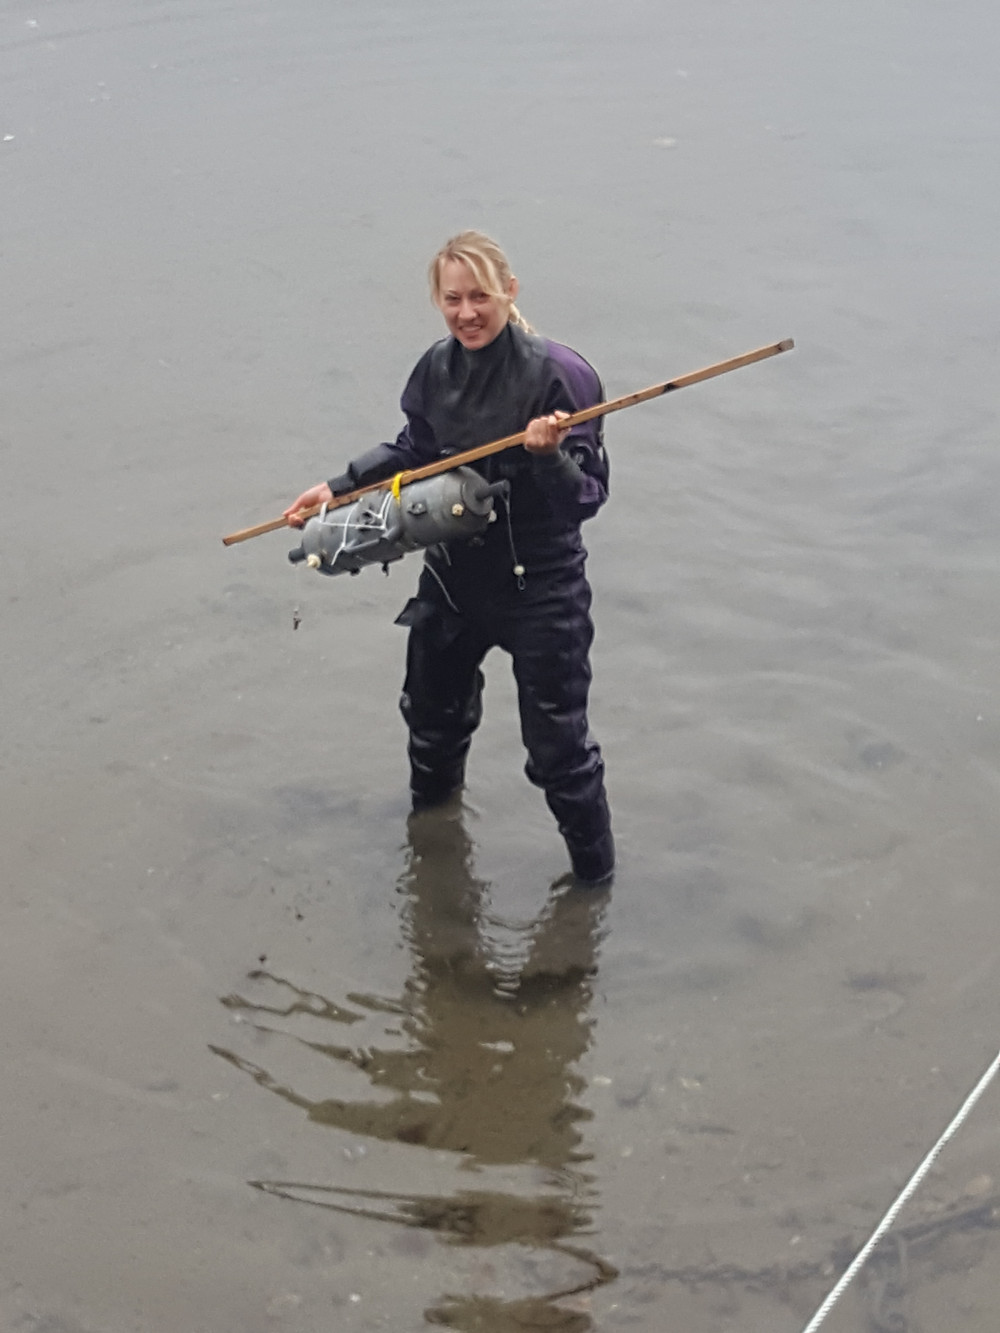 A woman wading into the water with a Niskin bottle used to collect water for sampling.